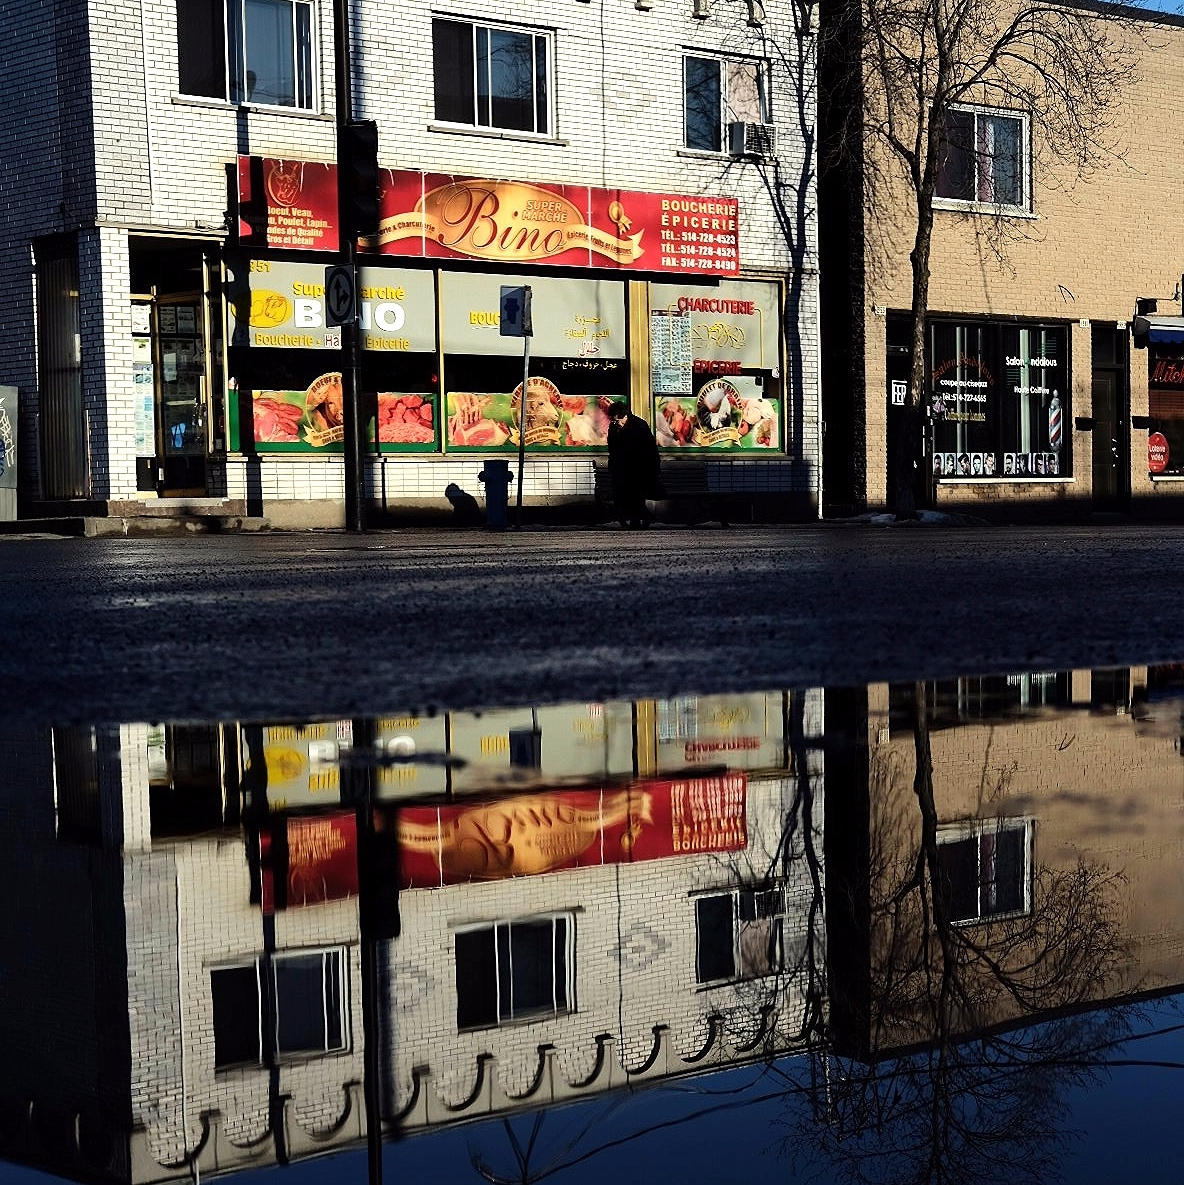 Bino golden reflection - street - maximemartin | ello